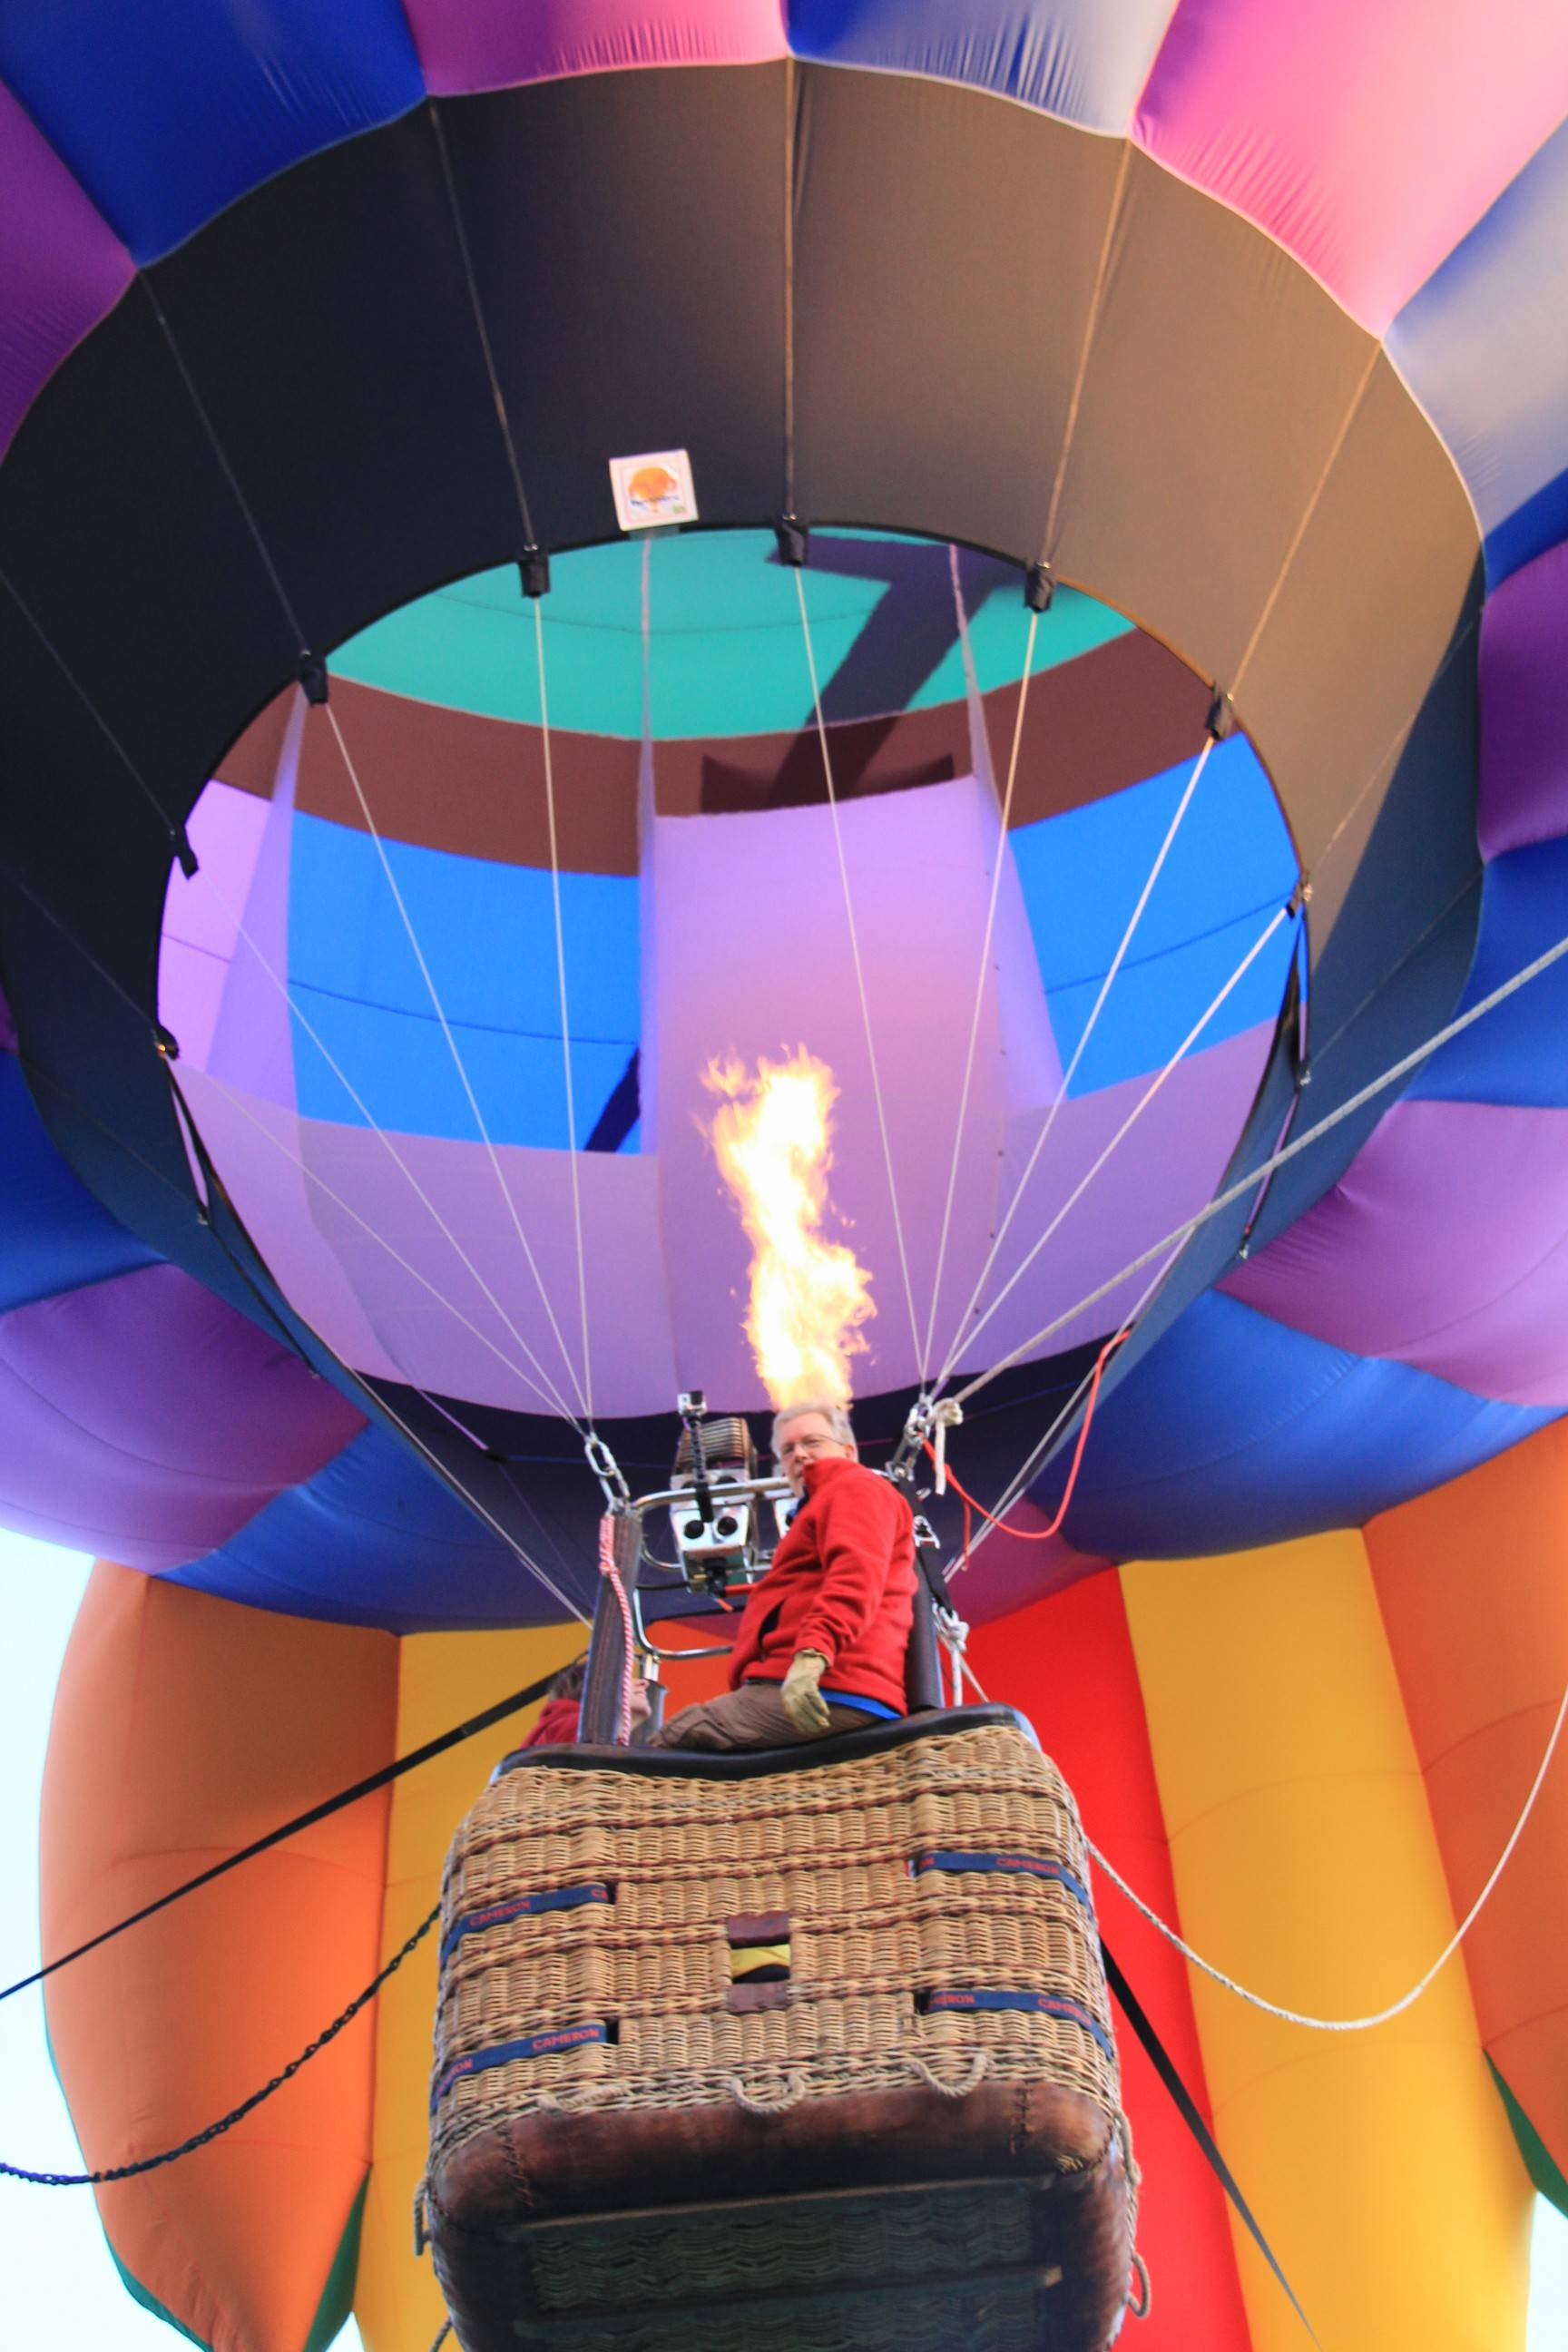 Dave Reinuke will be one of many balloonists demonstrating his craft at this year's Eyes to the Skies festival in Lisle.